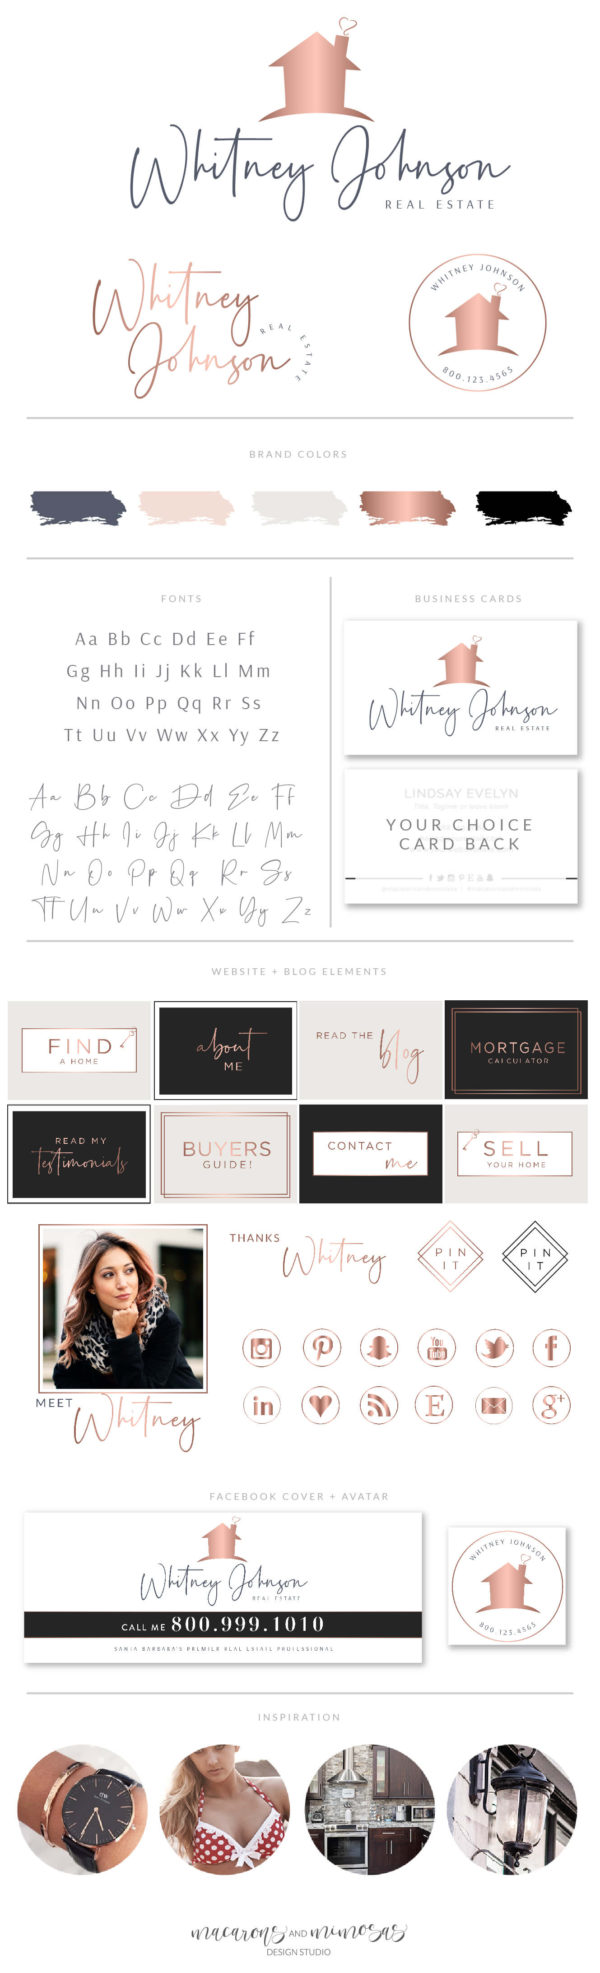 Realty Logo and Branding for Real Estate Agent, Broker Realtor Logo Design, Premade House with Heart business branding kit with watermark